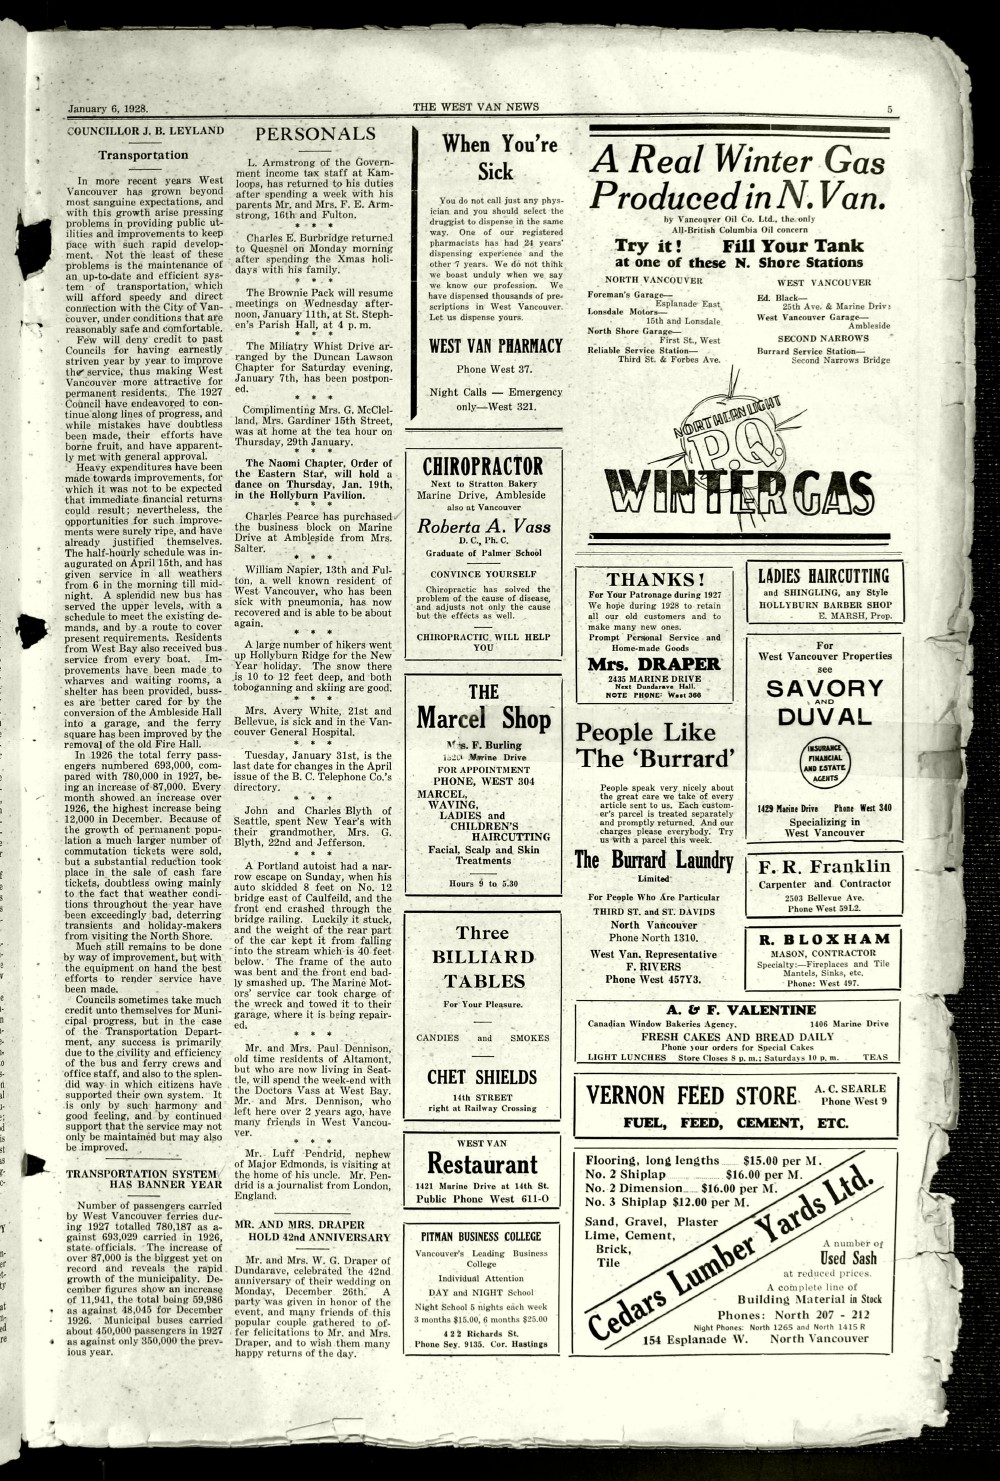 West Van. News (West Vancouver), 6 Jan 1928